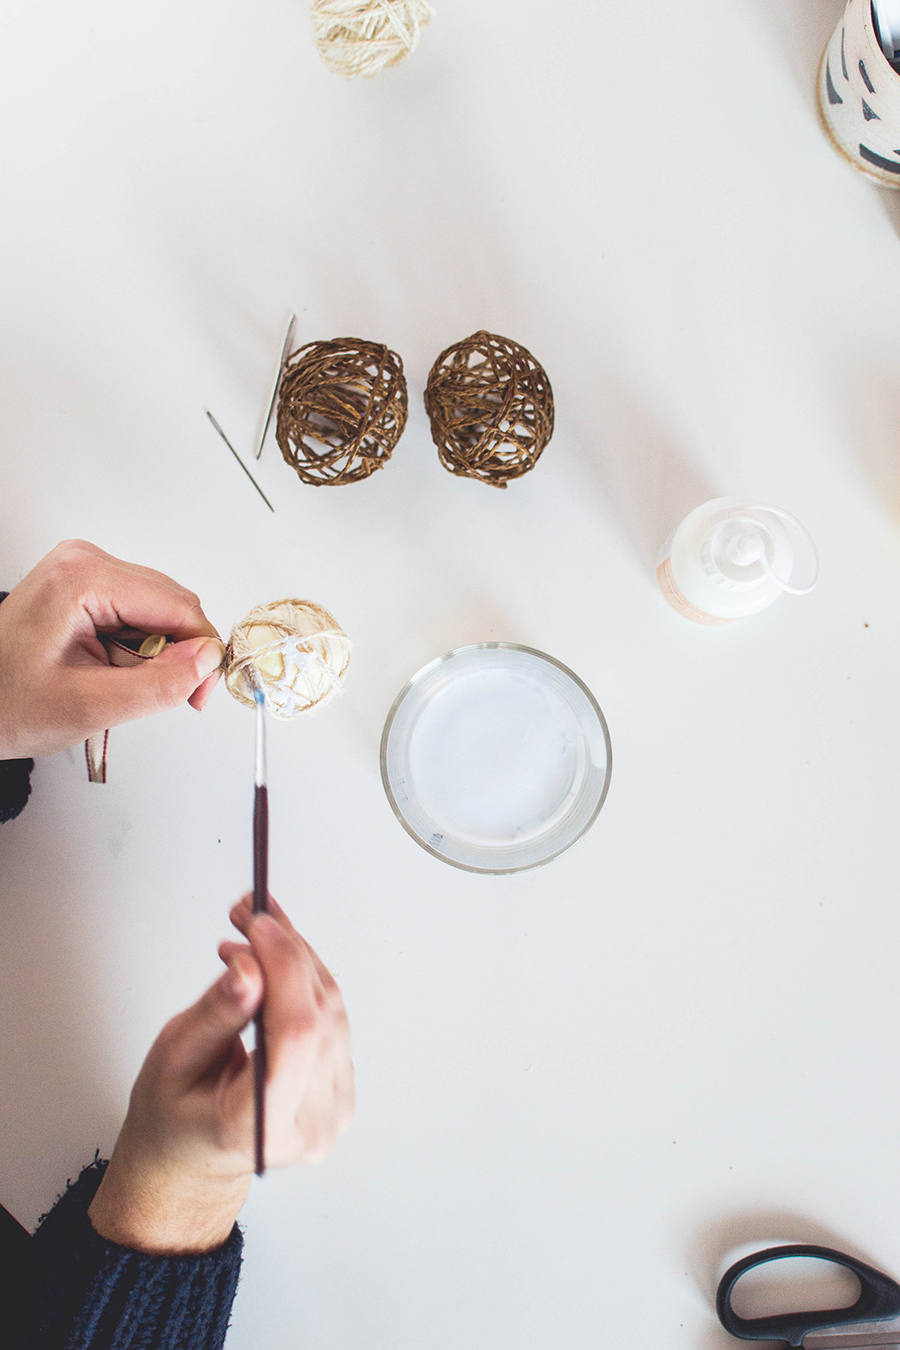 Make a twine sphere for your DIY winter scented garland